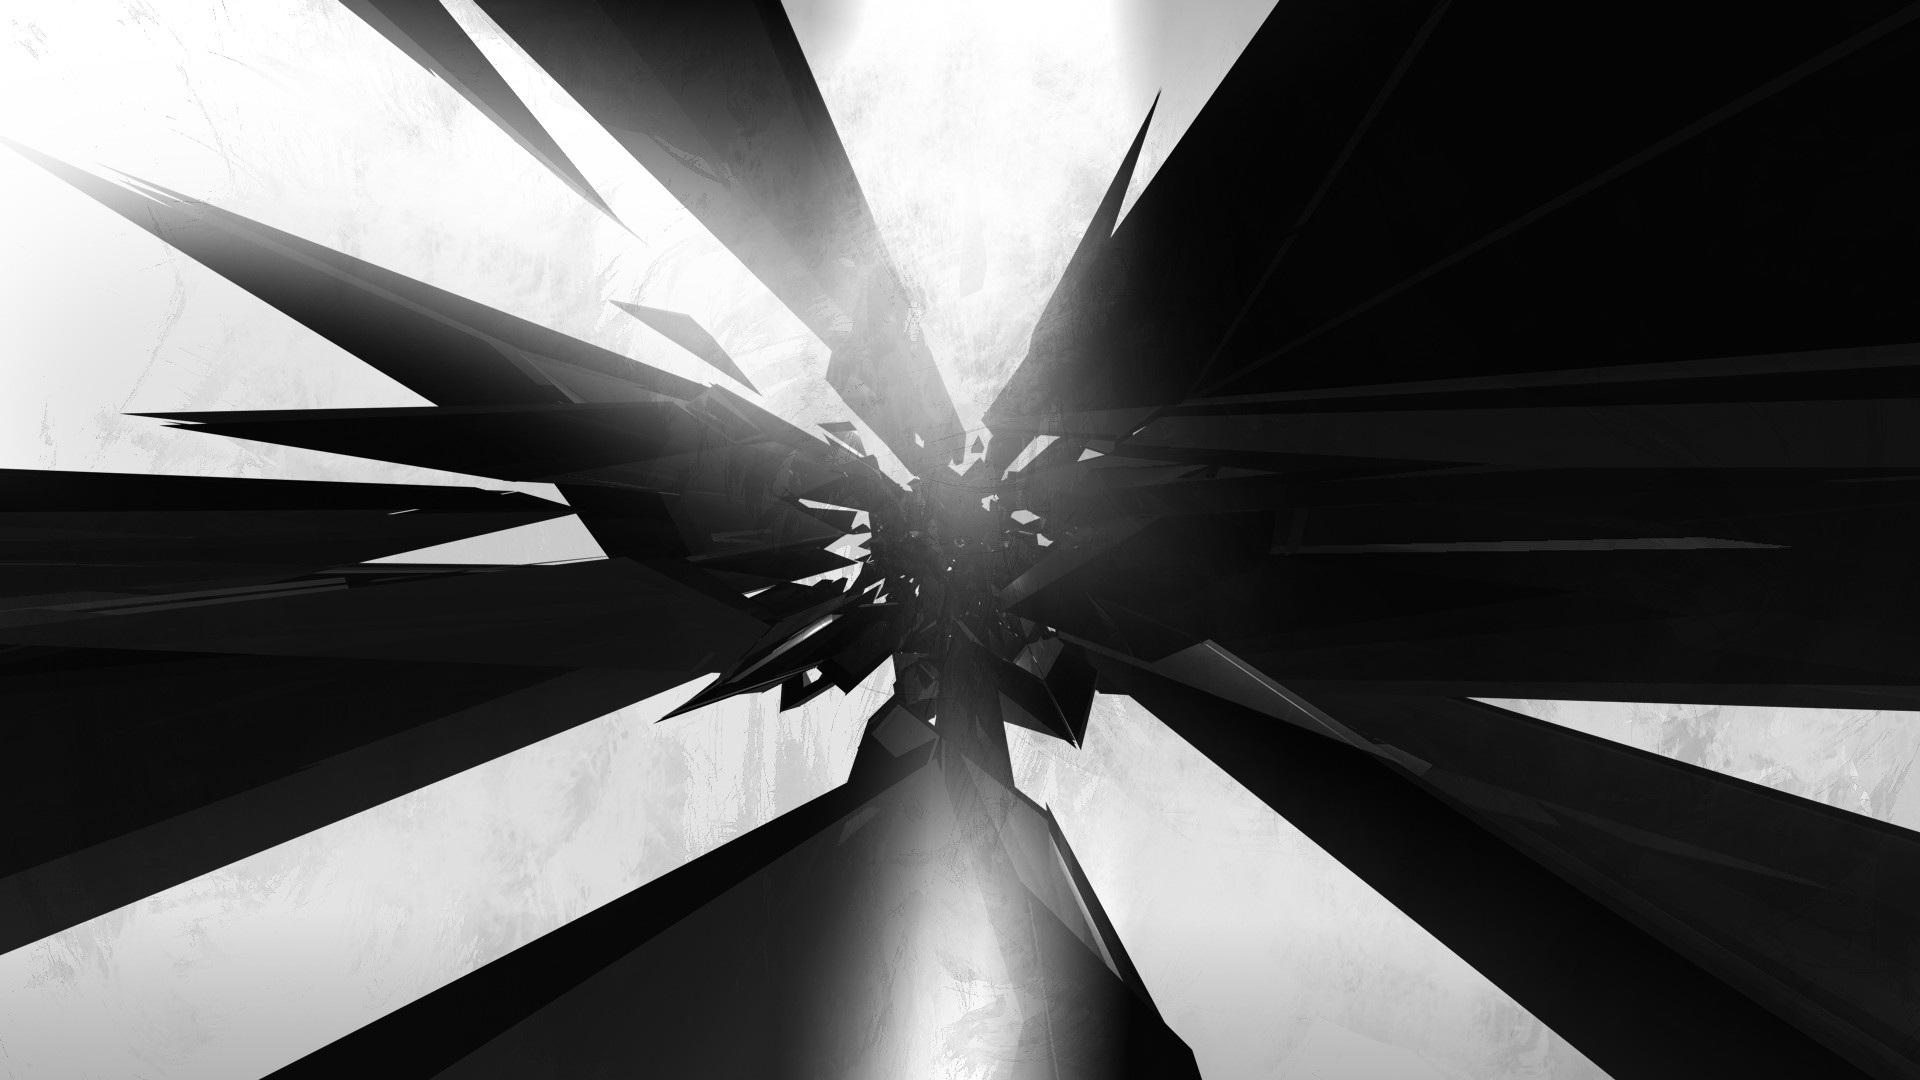 Abstract Black And White Art E2 80 94 Crafthubs Wallpaper. studio  apartments design. apartment …